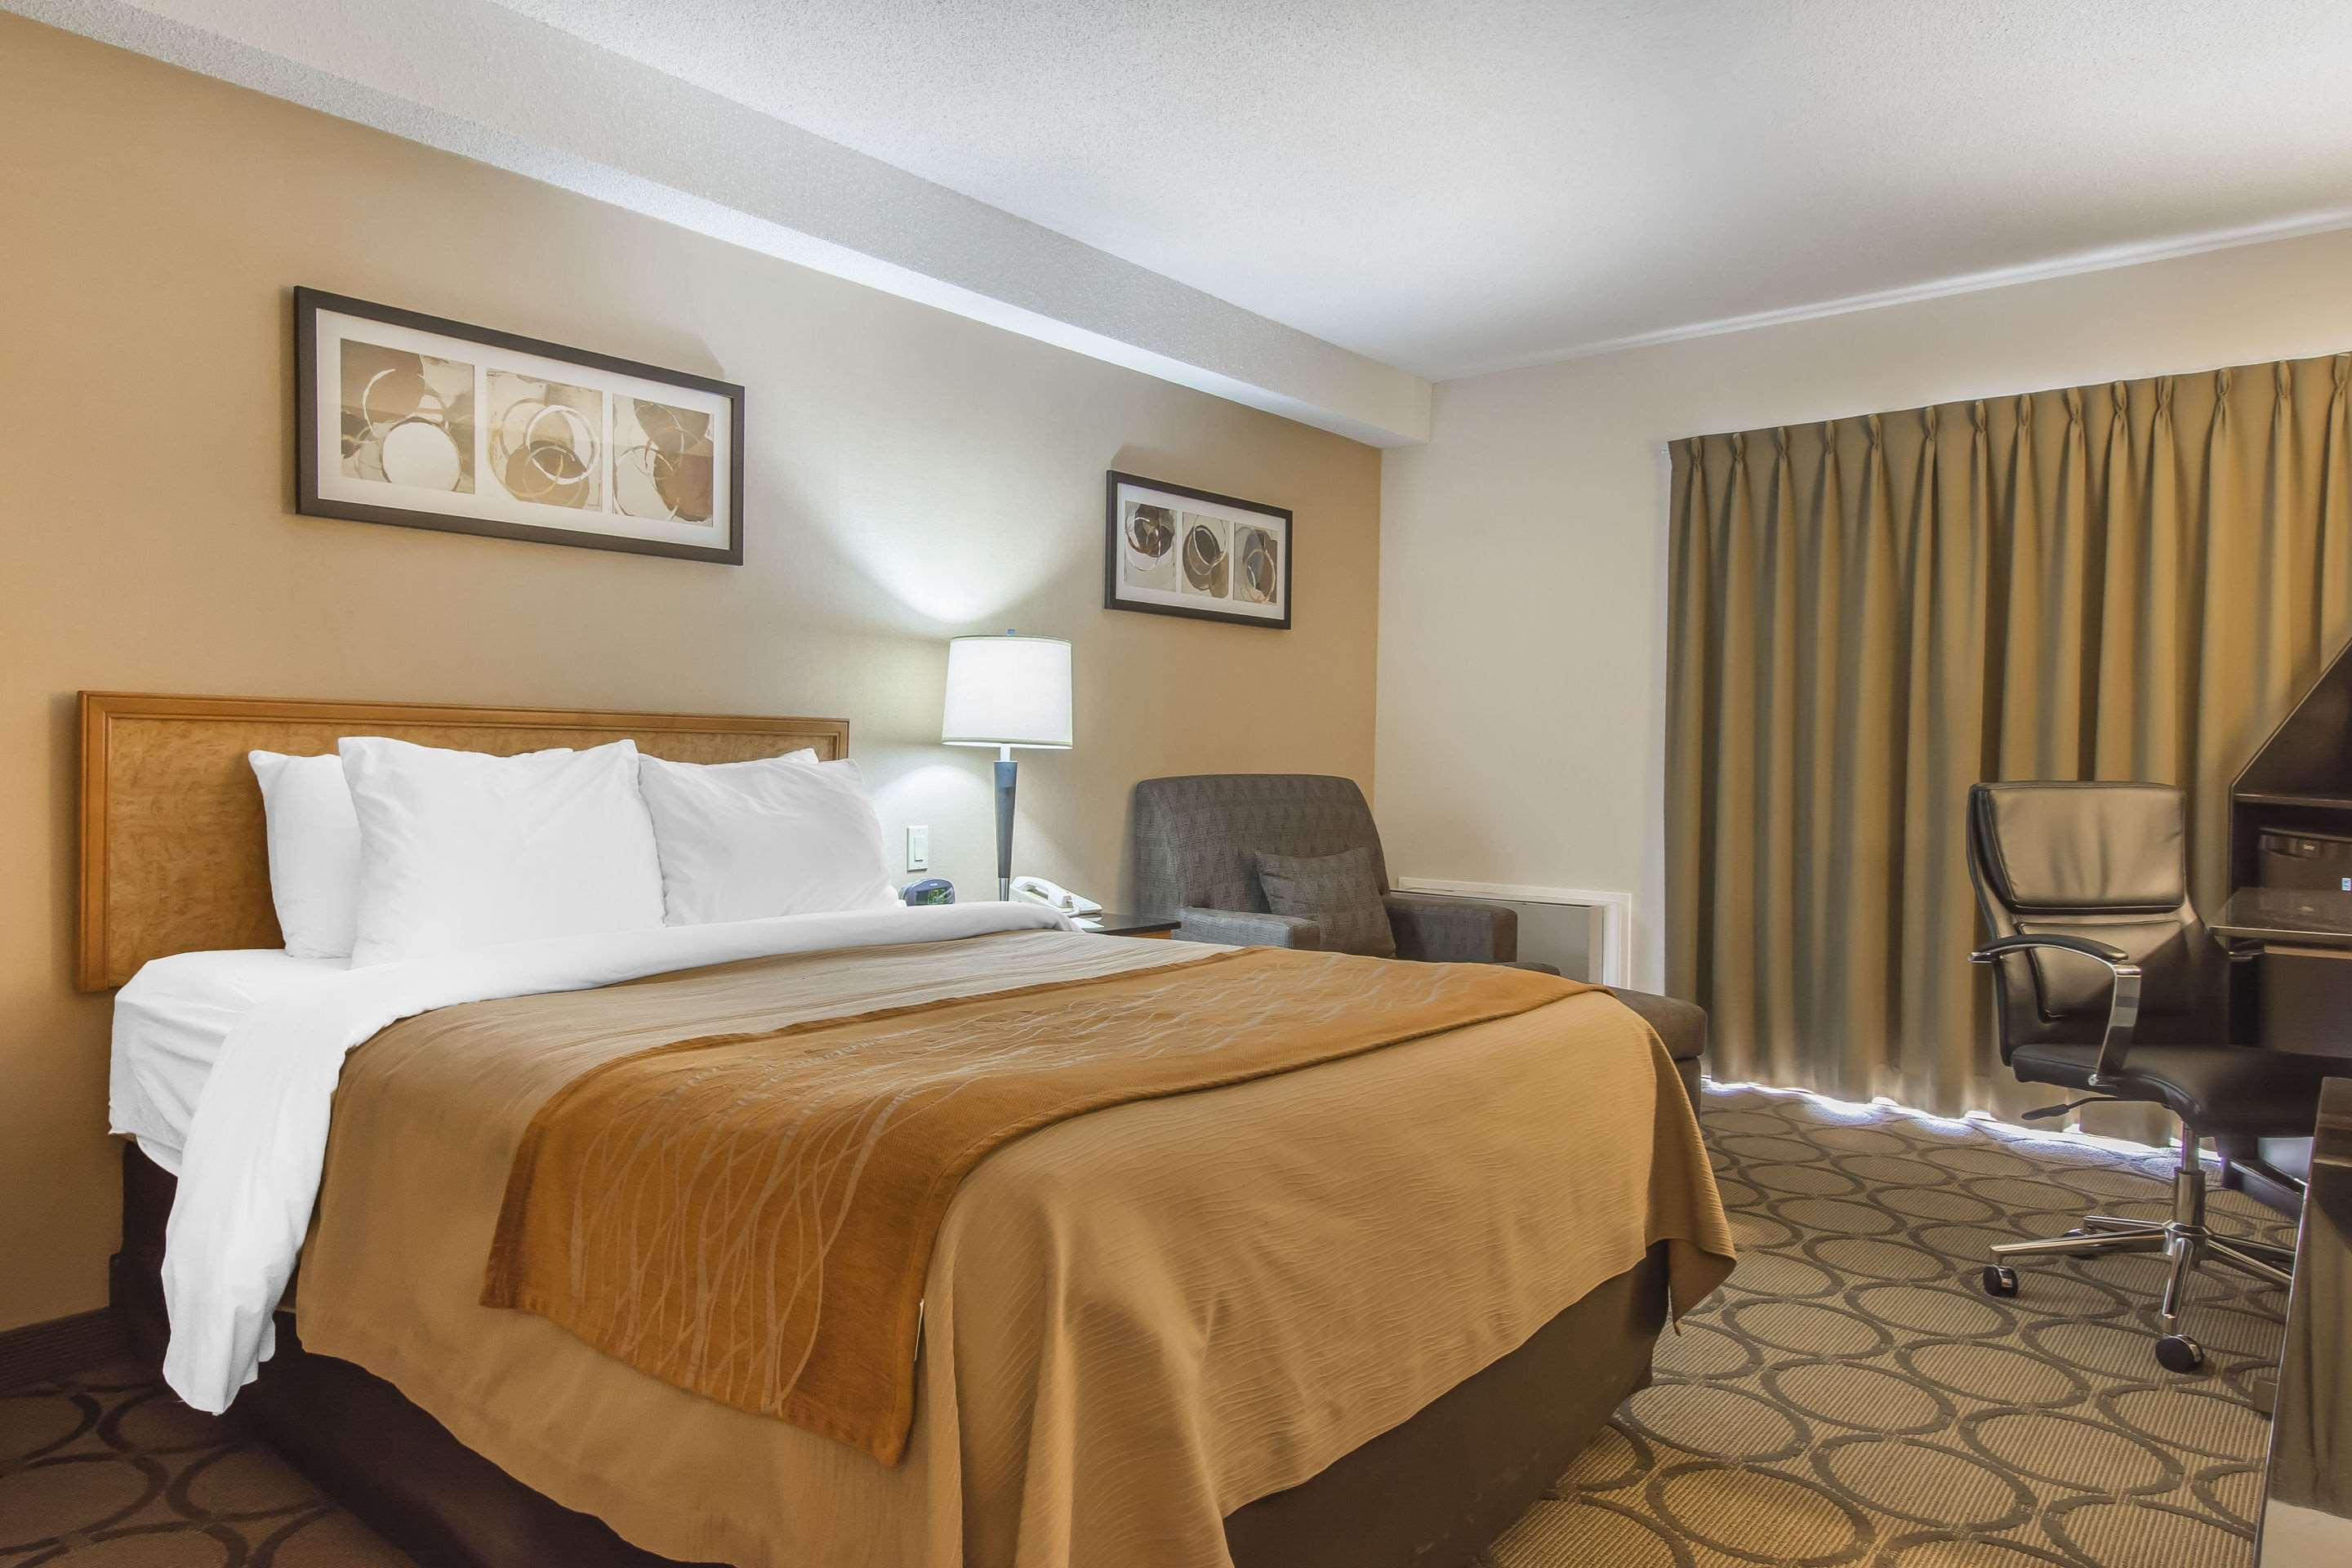 Comfort Inn Magnetic Hill in Moncton: Guest room with added amenities